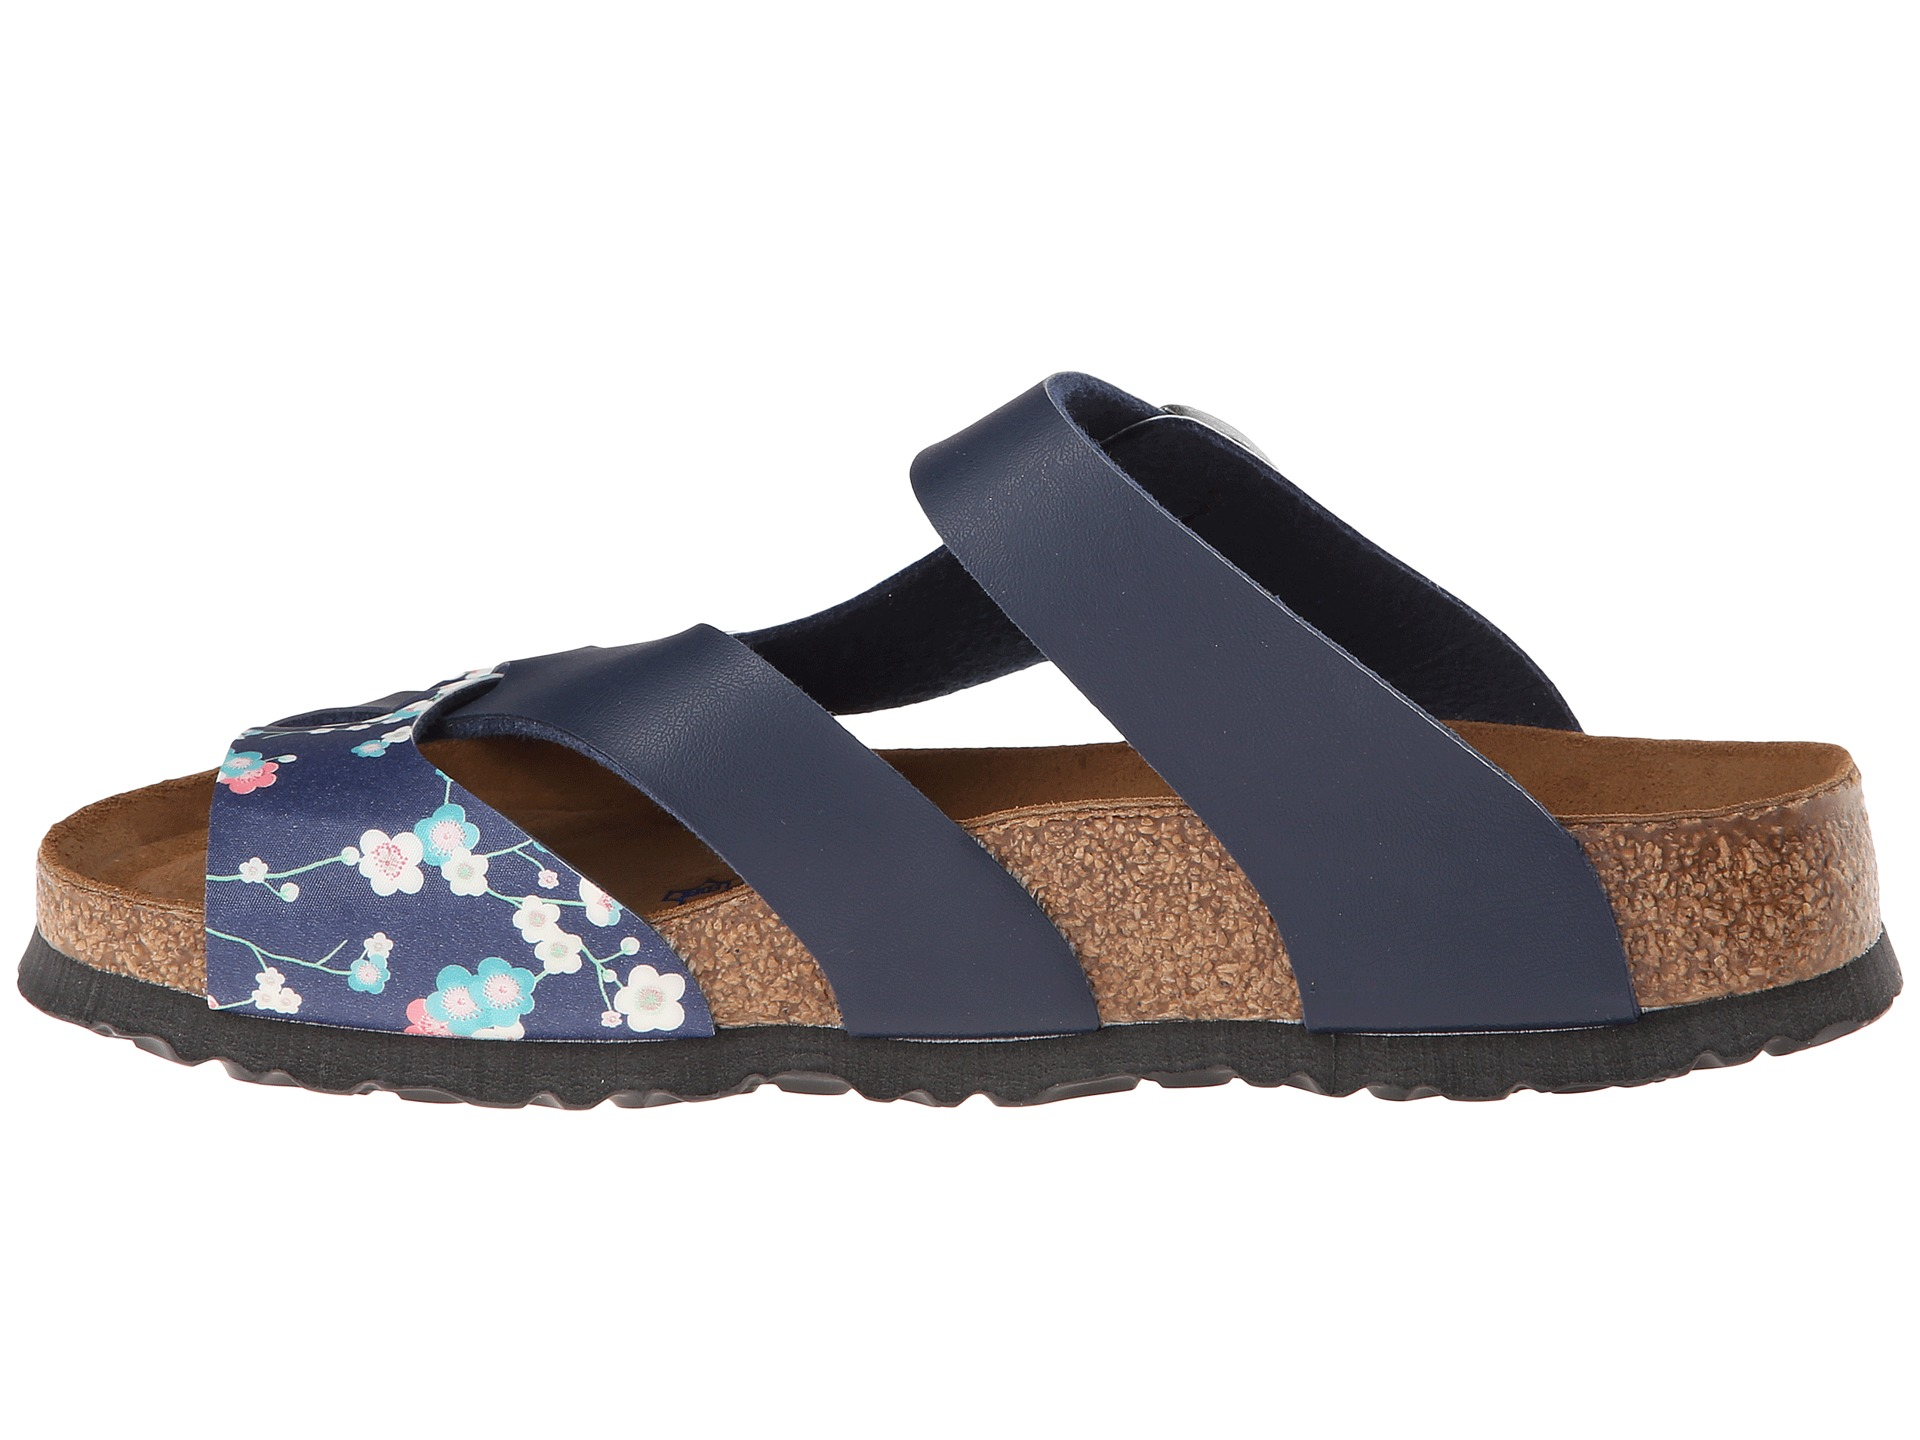 d780a9f96221 When searching for an ideal couple of women s sandals